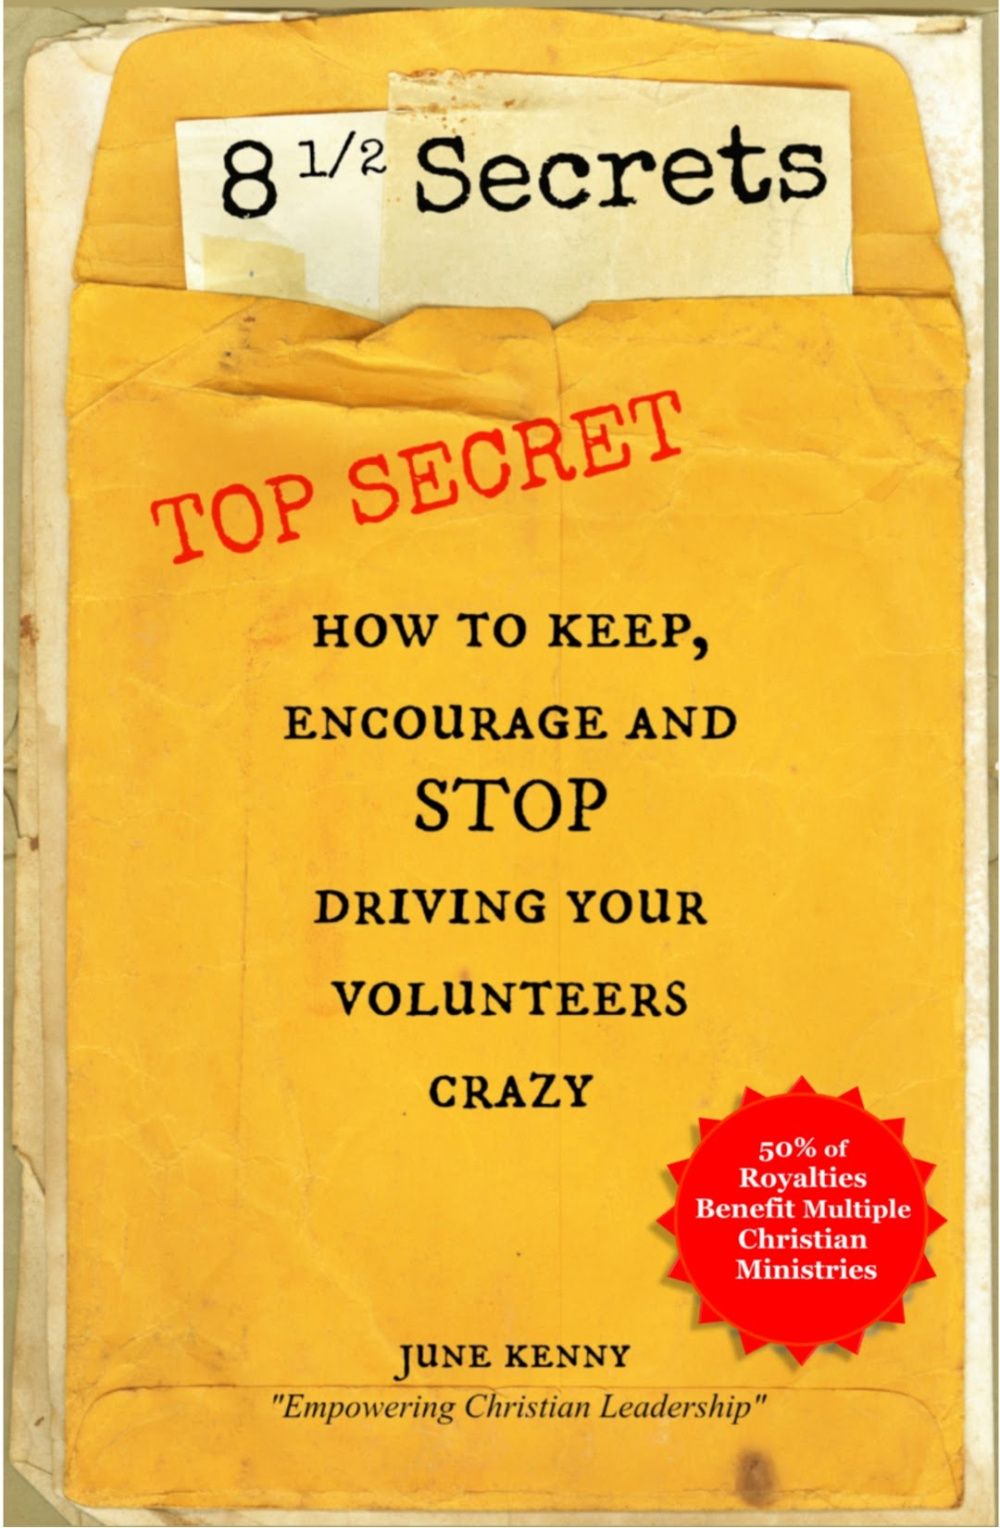 8 1/2 Secrets your volunteers wished you knew